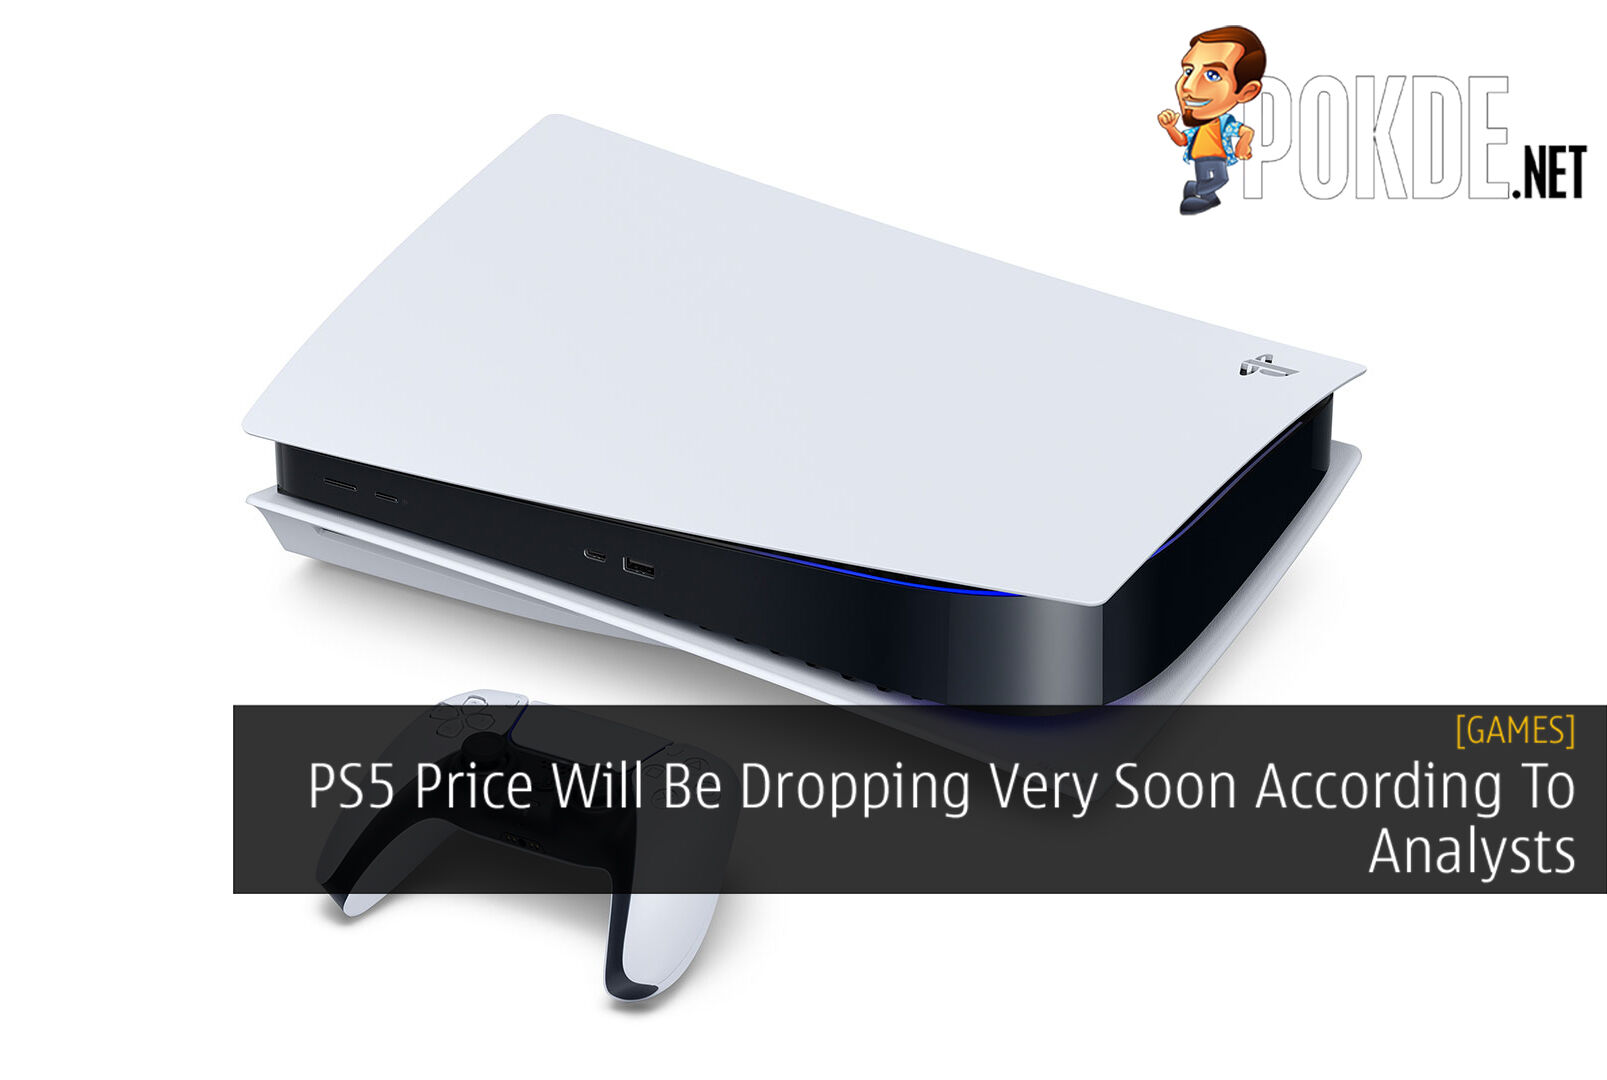 PS5 Price Drop cover